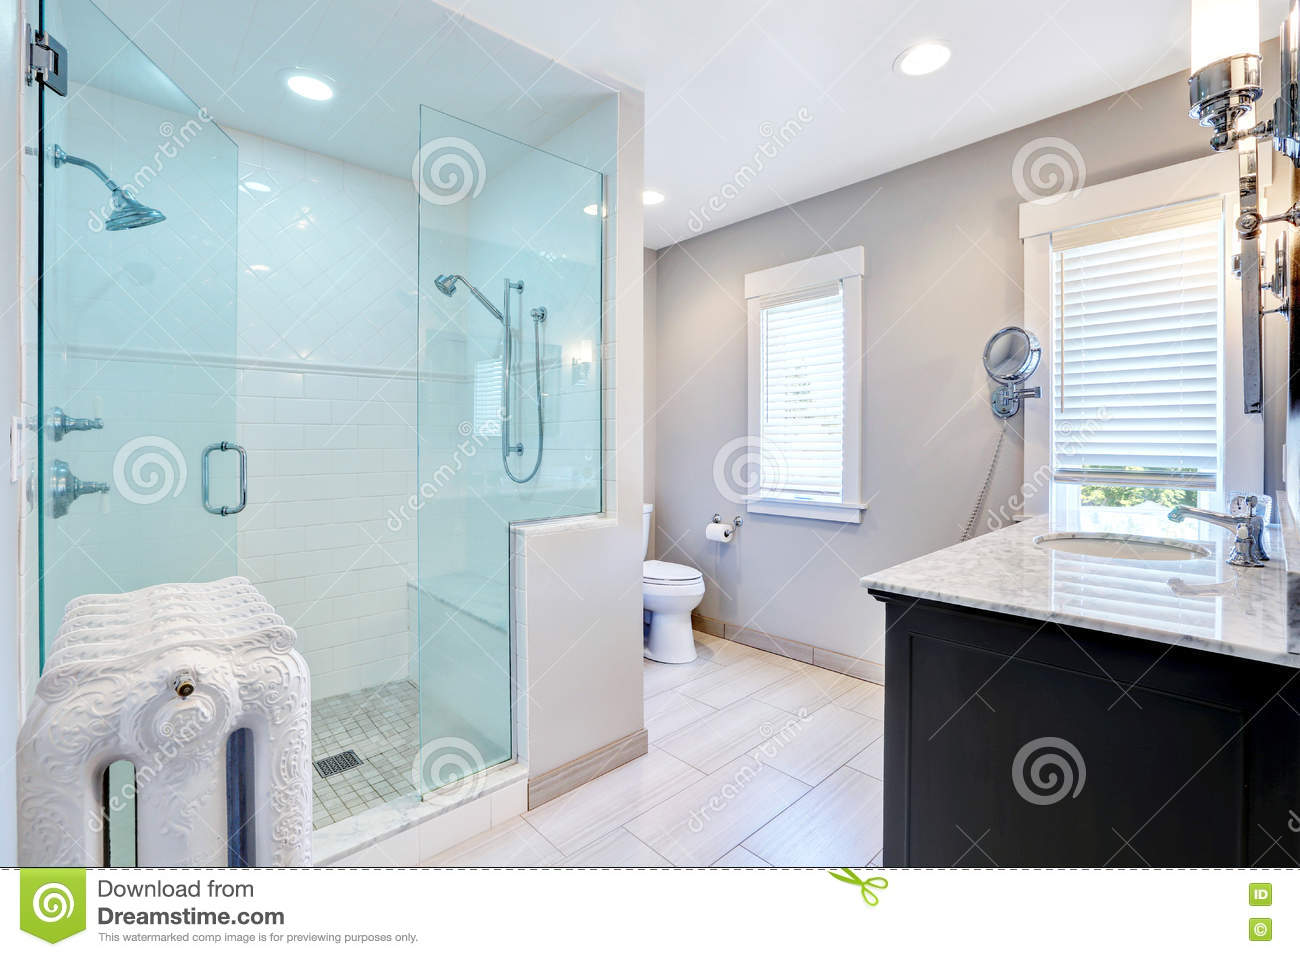 Refreshing Bathroom With Walk In Shower And Cast-iron Radiator Stock ...